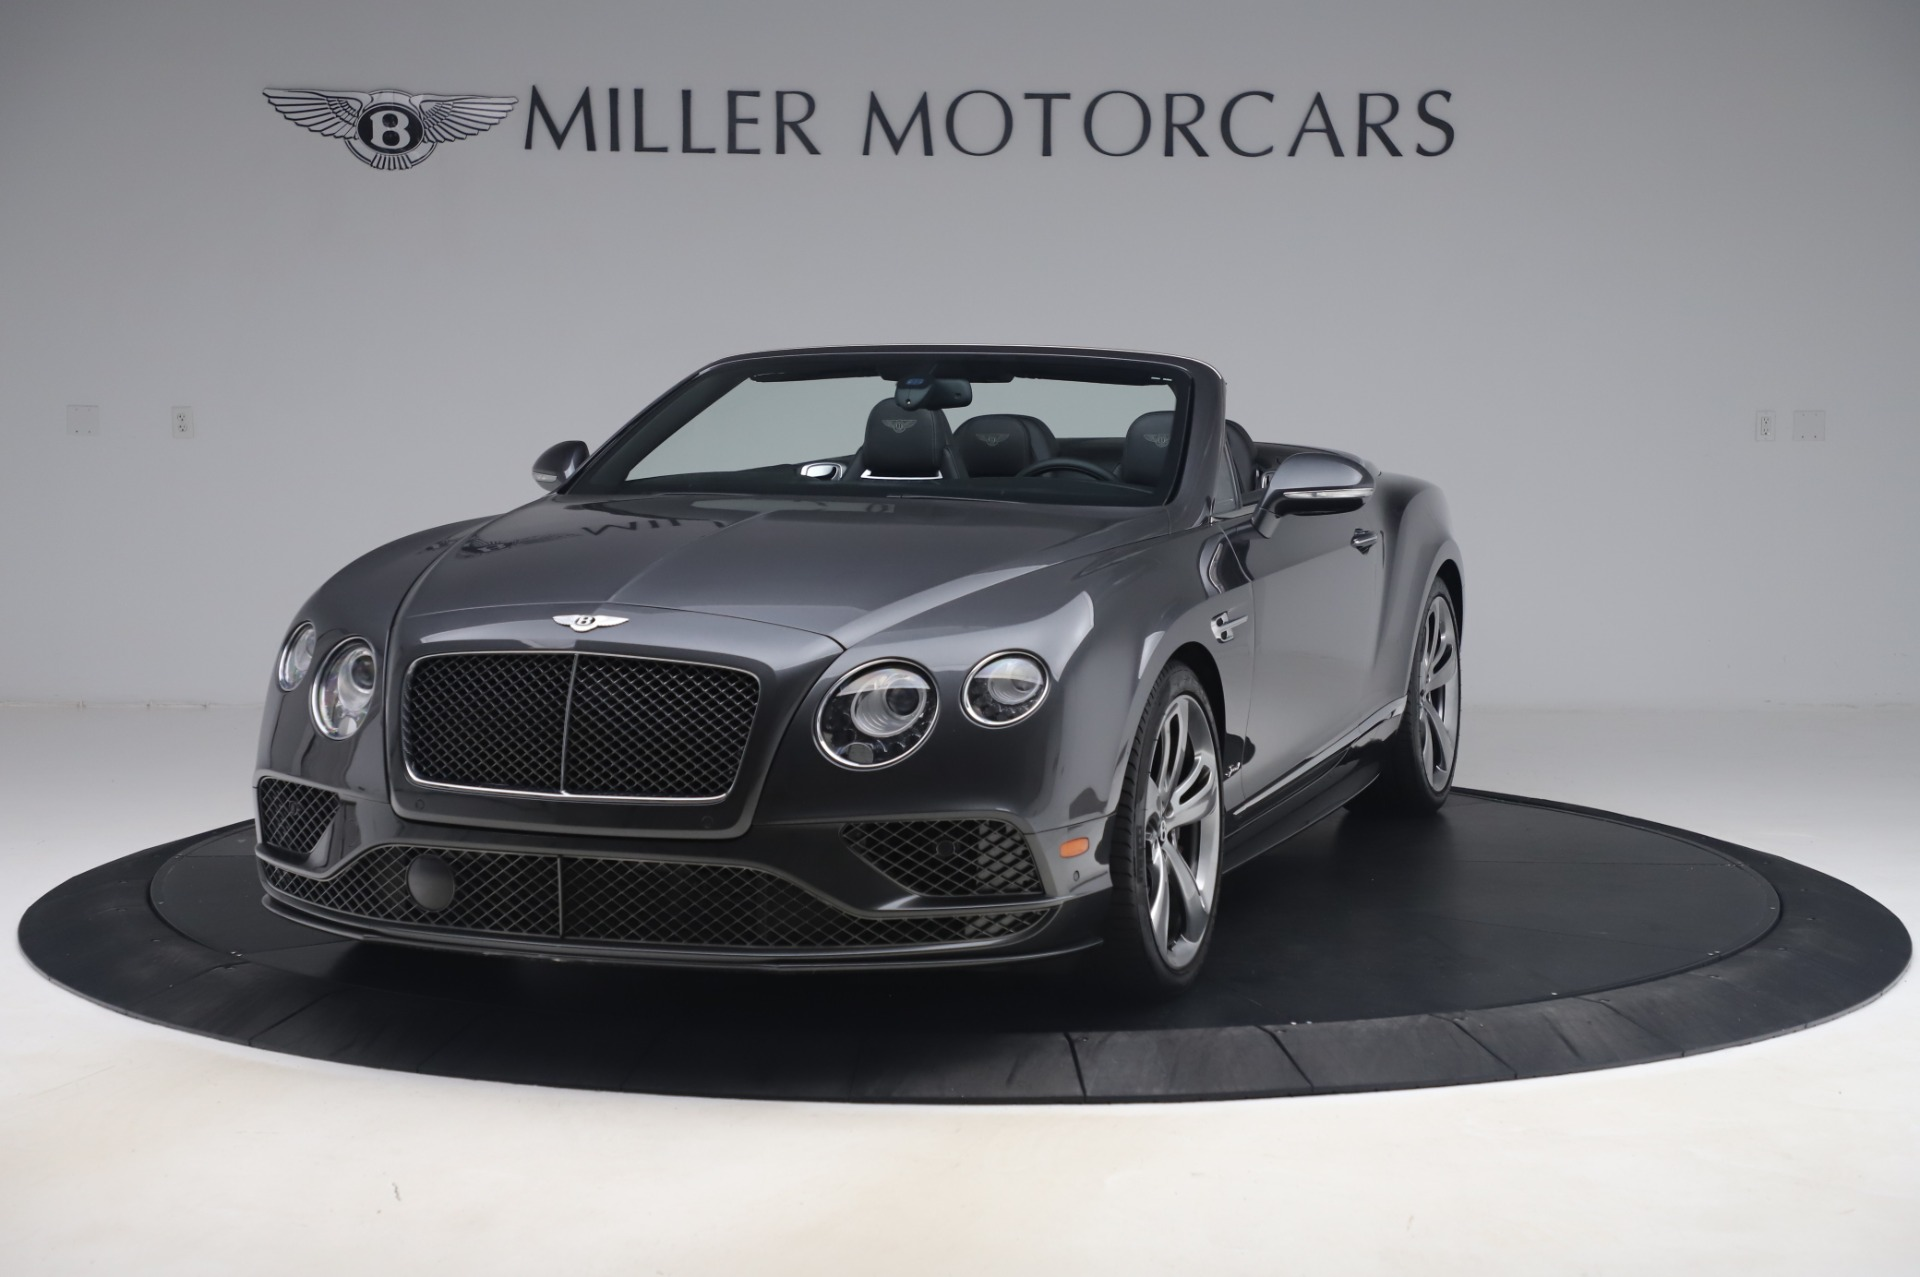 Used 2016 Bentley Continental GTC Speed for sale $146,900 at Rolls-Royce Motor Cars Greenwich in Greenwich CT 06830 1